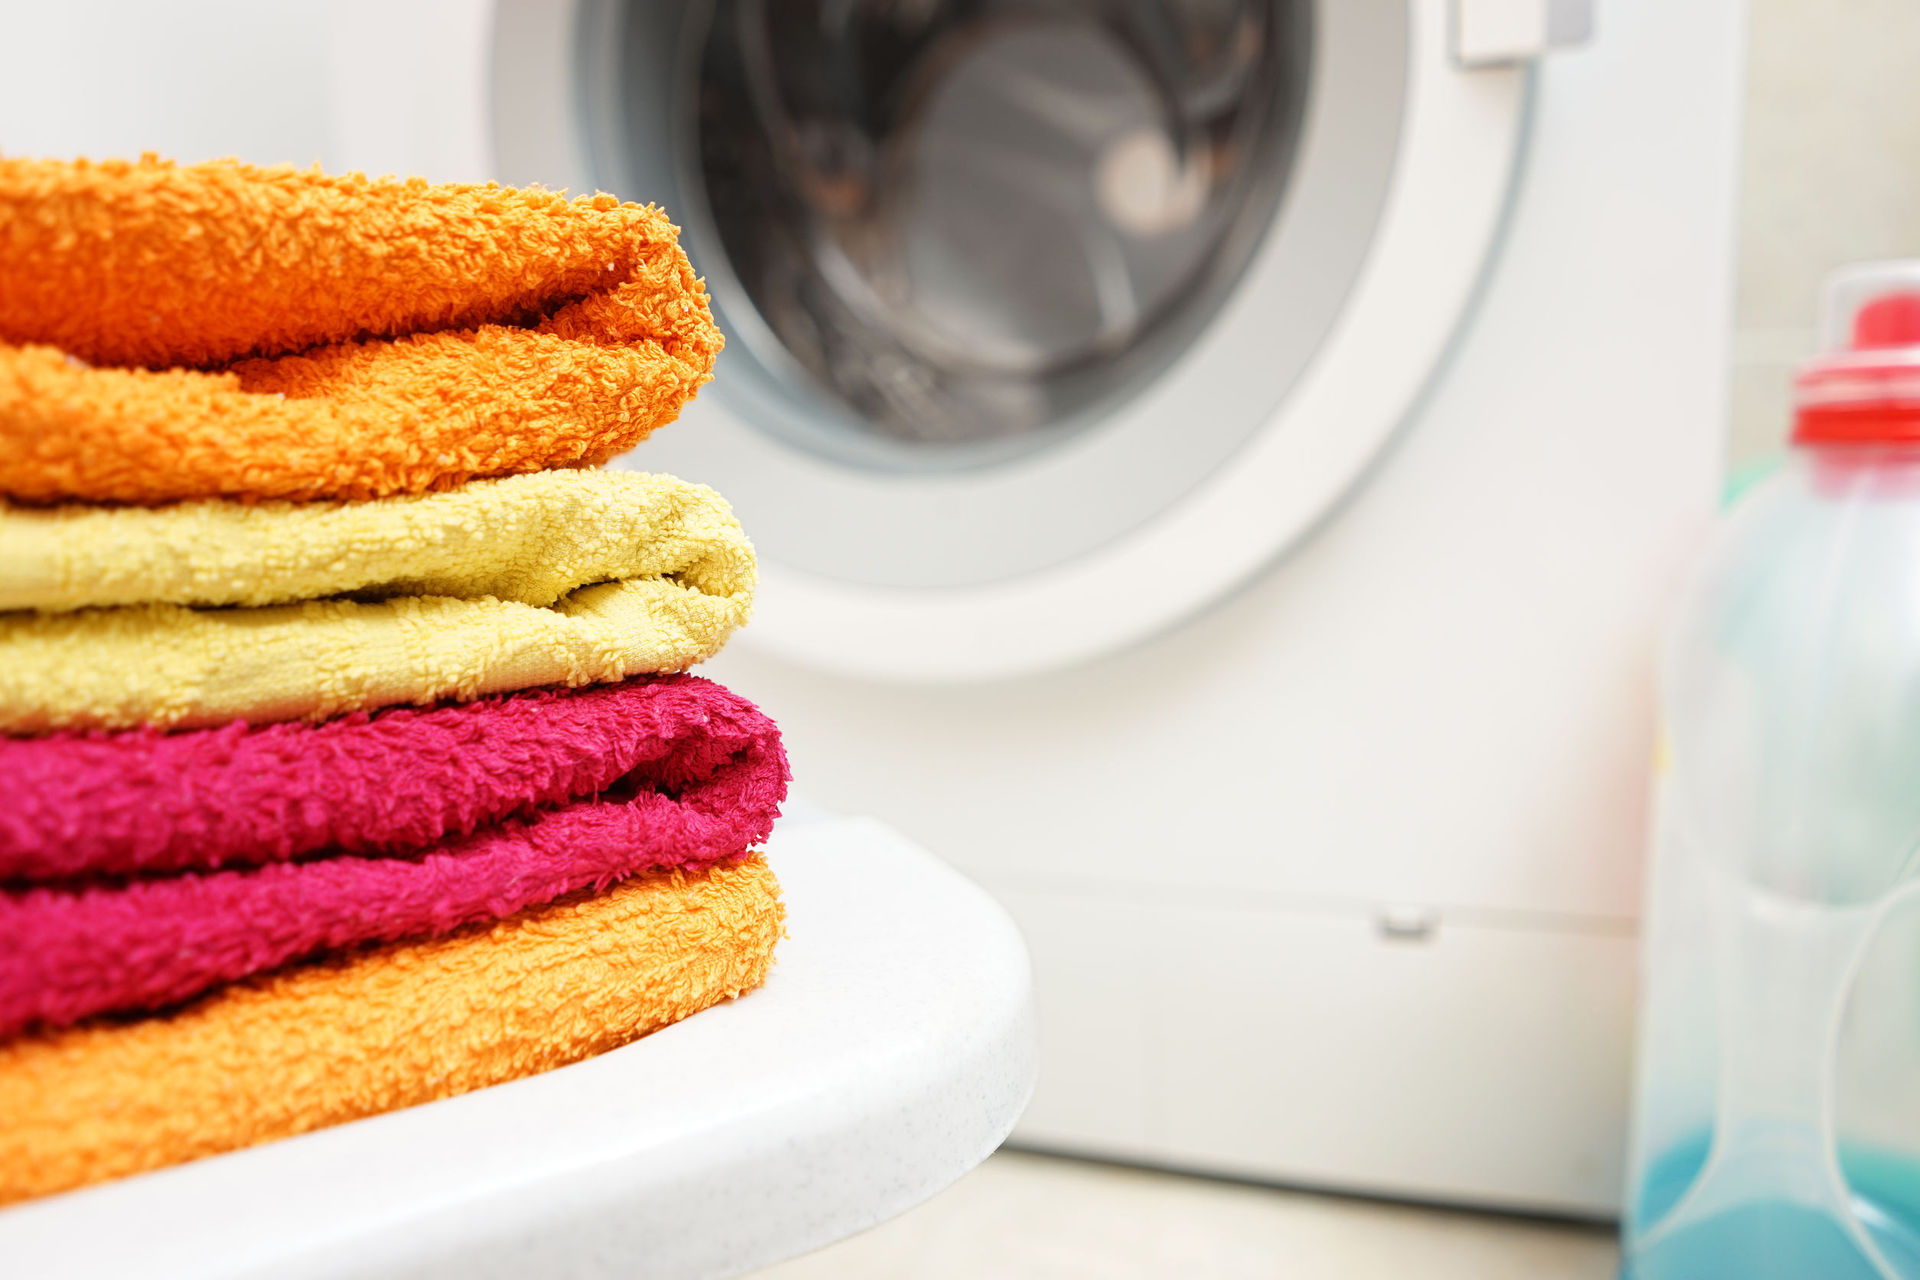 A simple query about towels has completely divided the internet